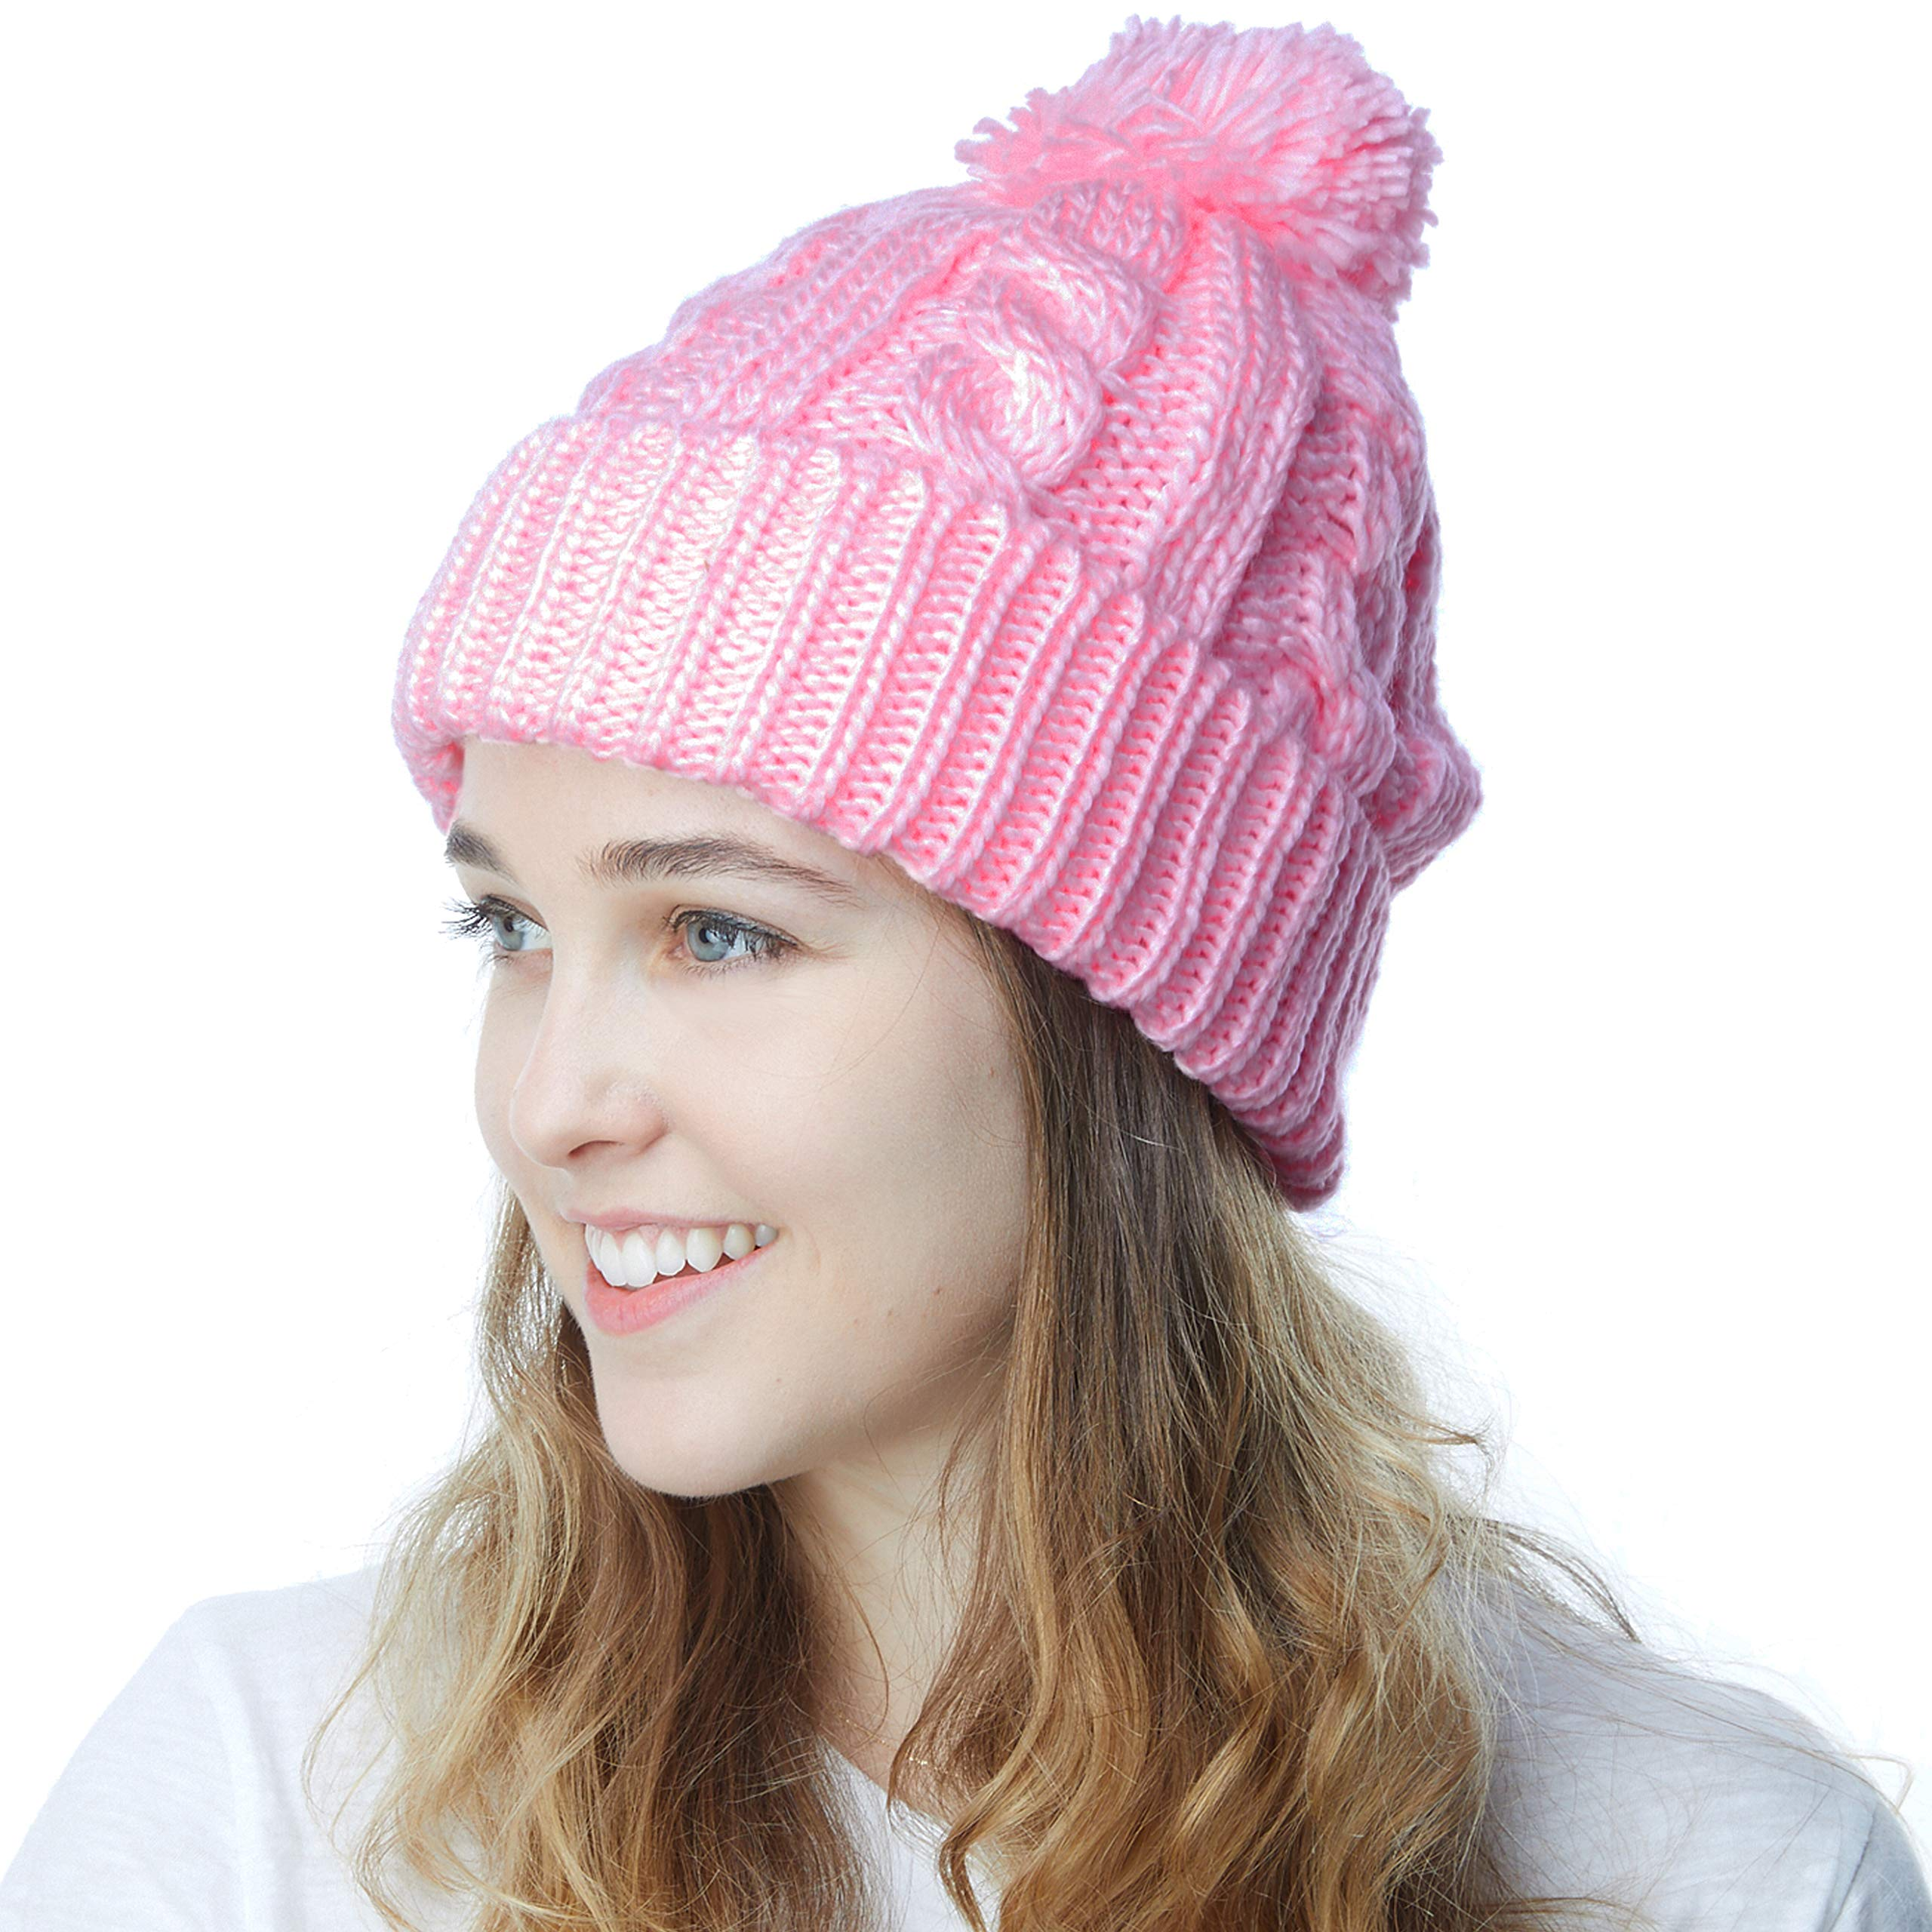 25a85504f6 THE HAT DEPOT Winter Oversized Cable Knitted Pom Pom Beanie Hat Fleece  Lining Hat product image